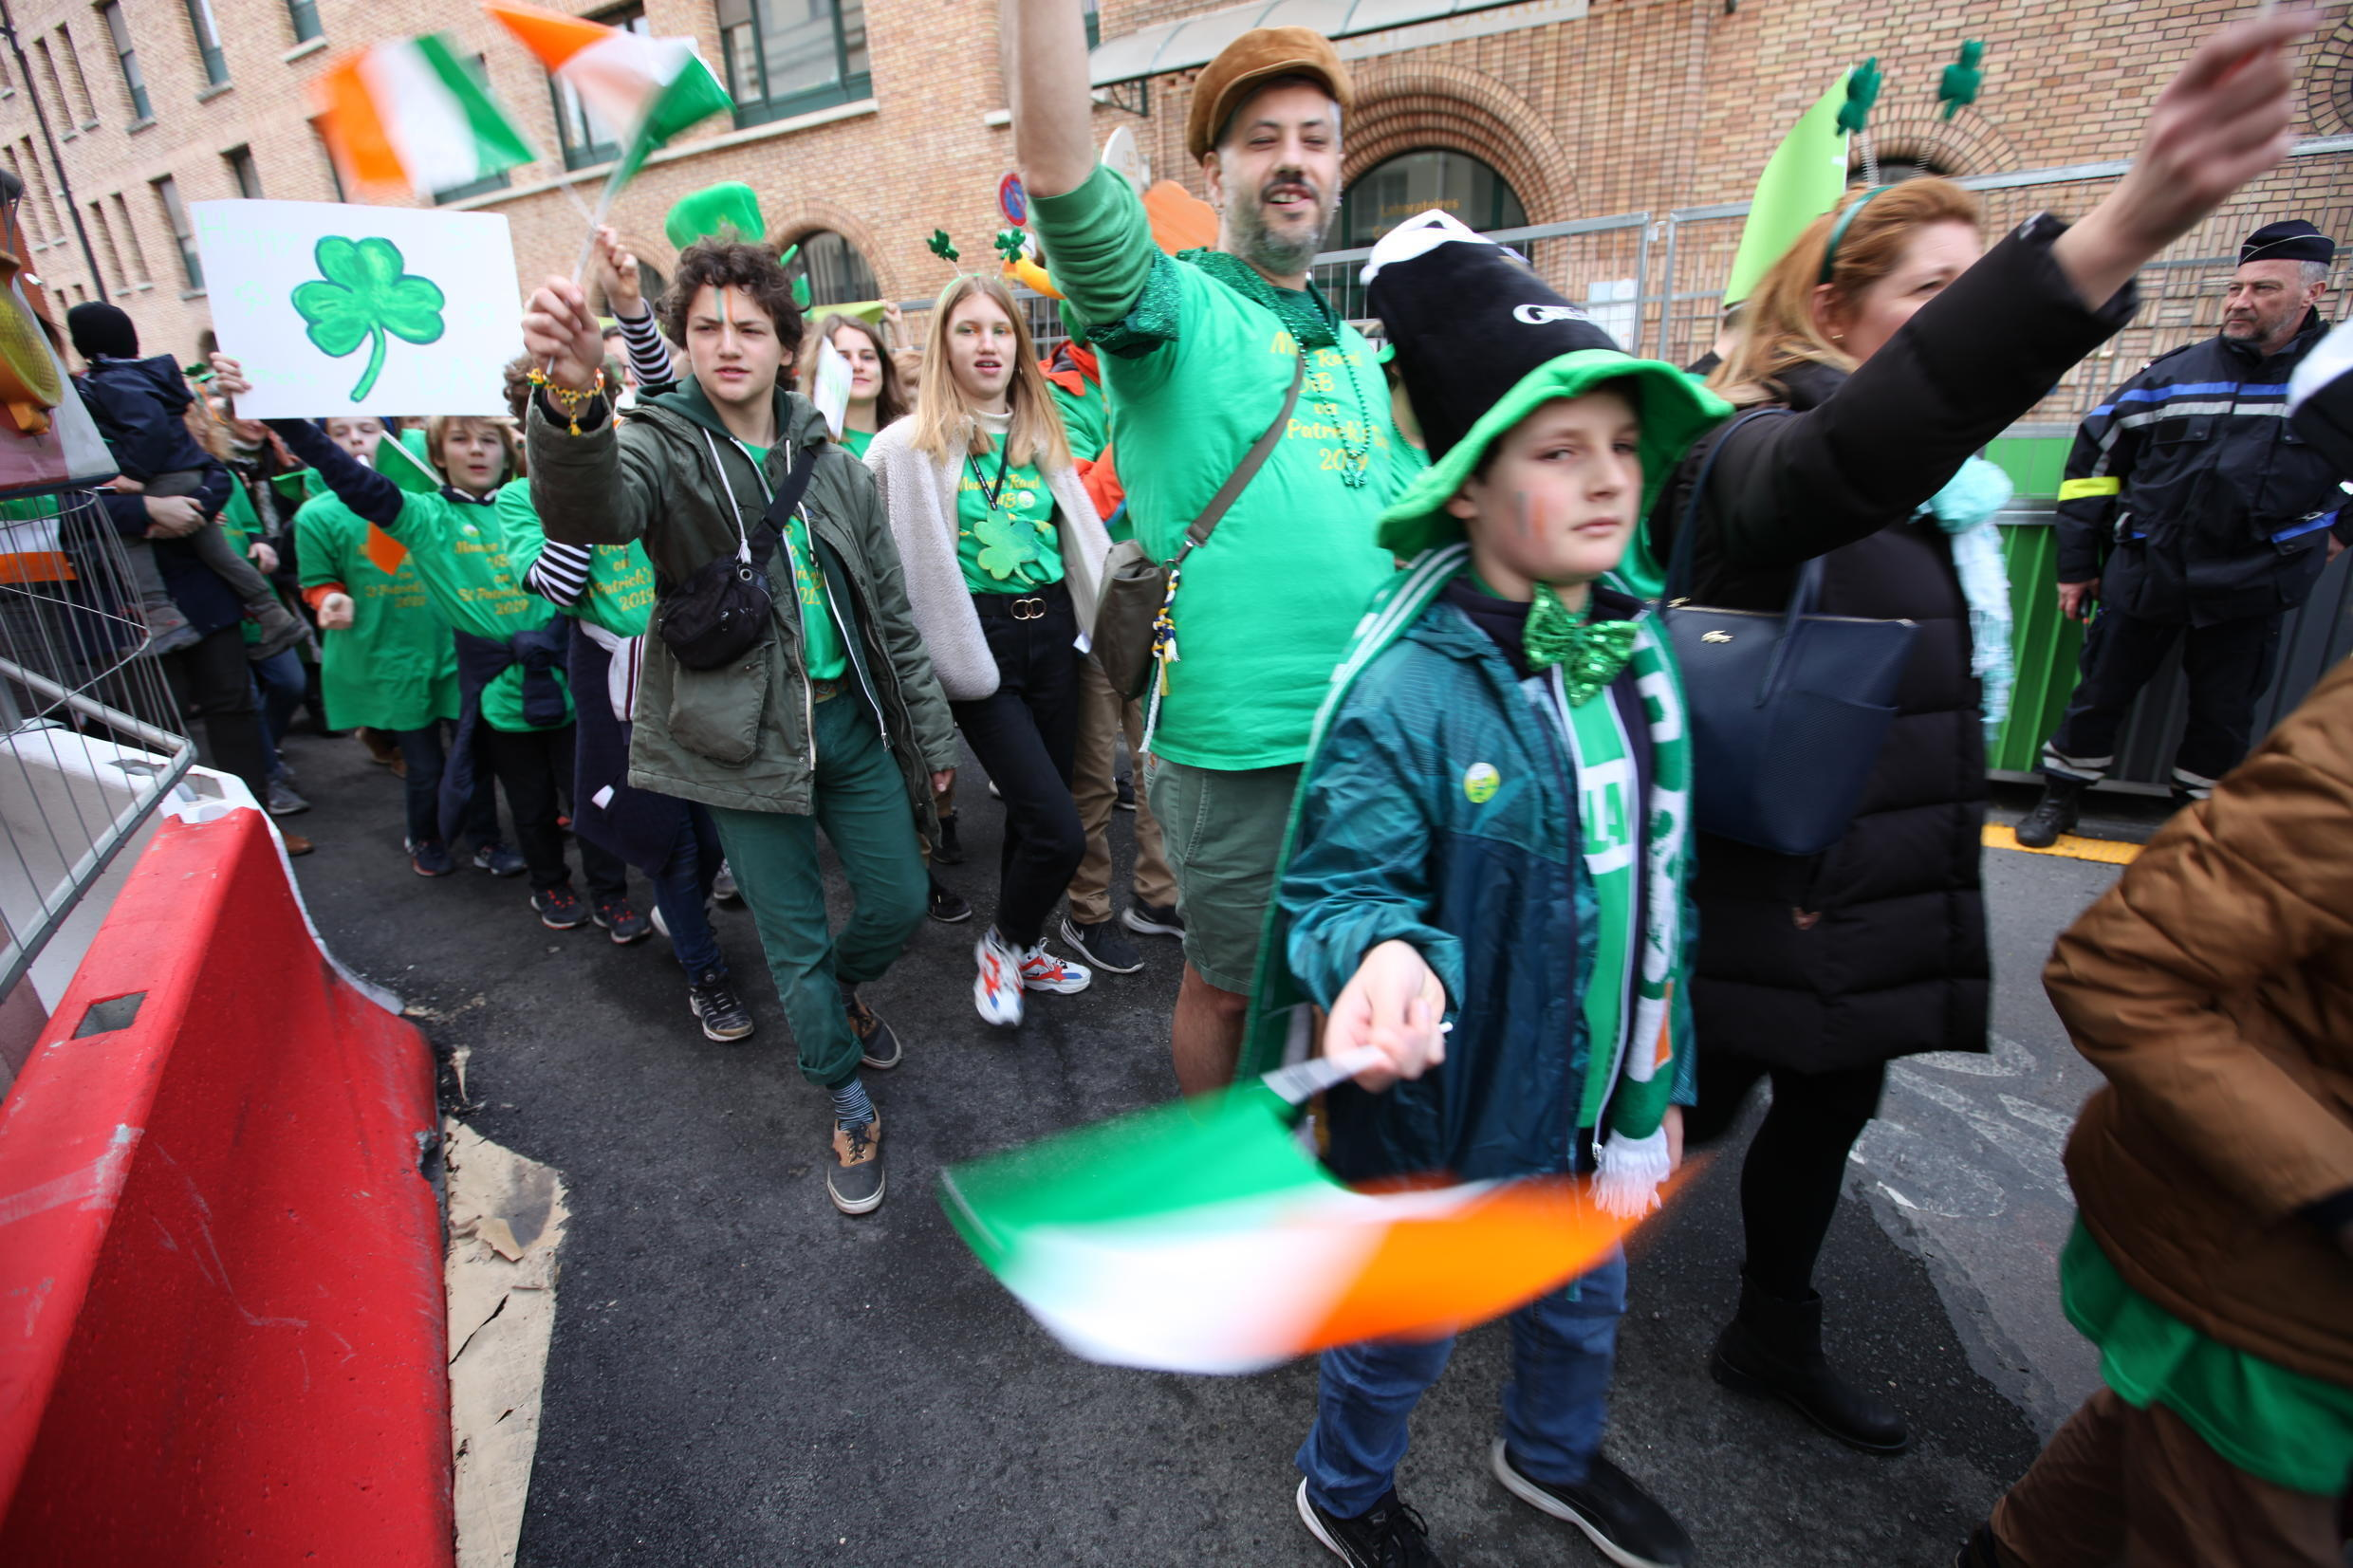 Both Irish people in France and Ireland-loving French marched alongside to celebrate Saint Patrick's Day.